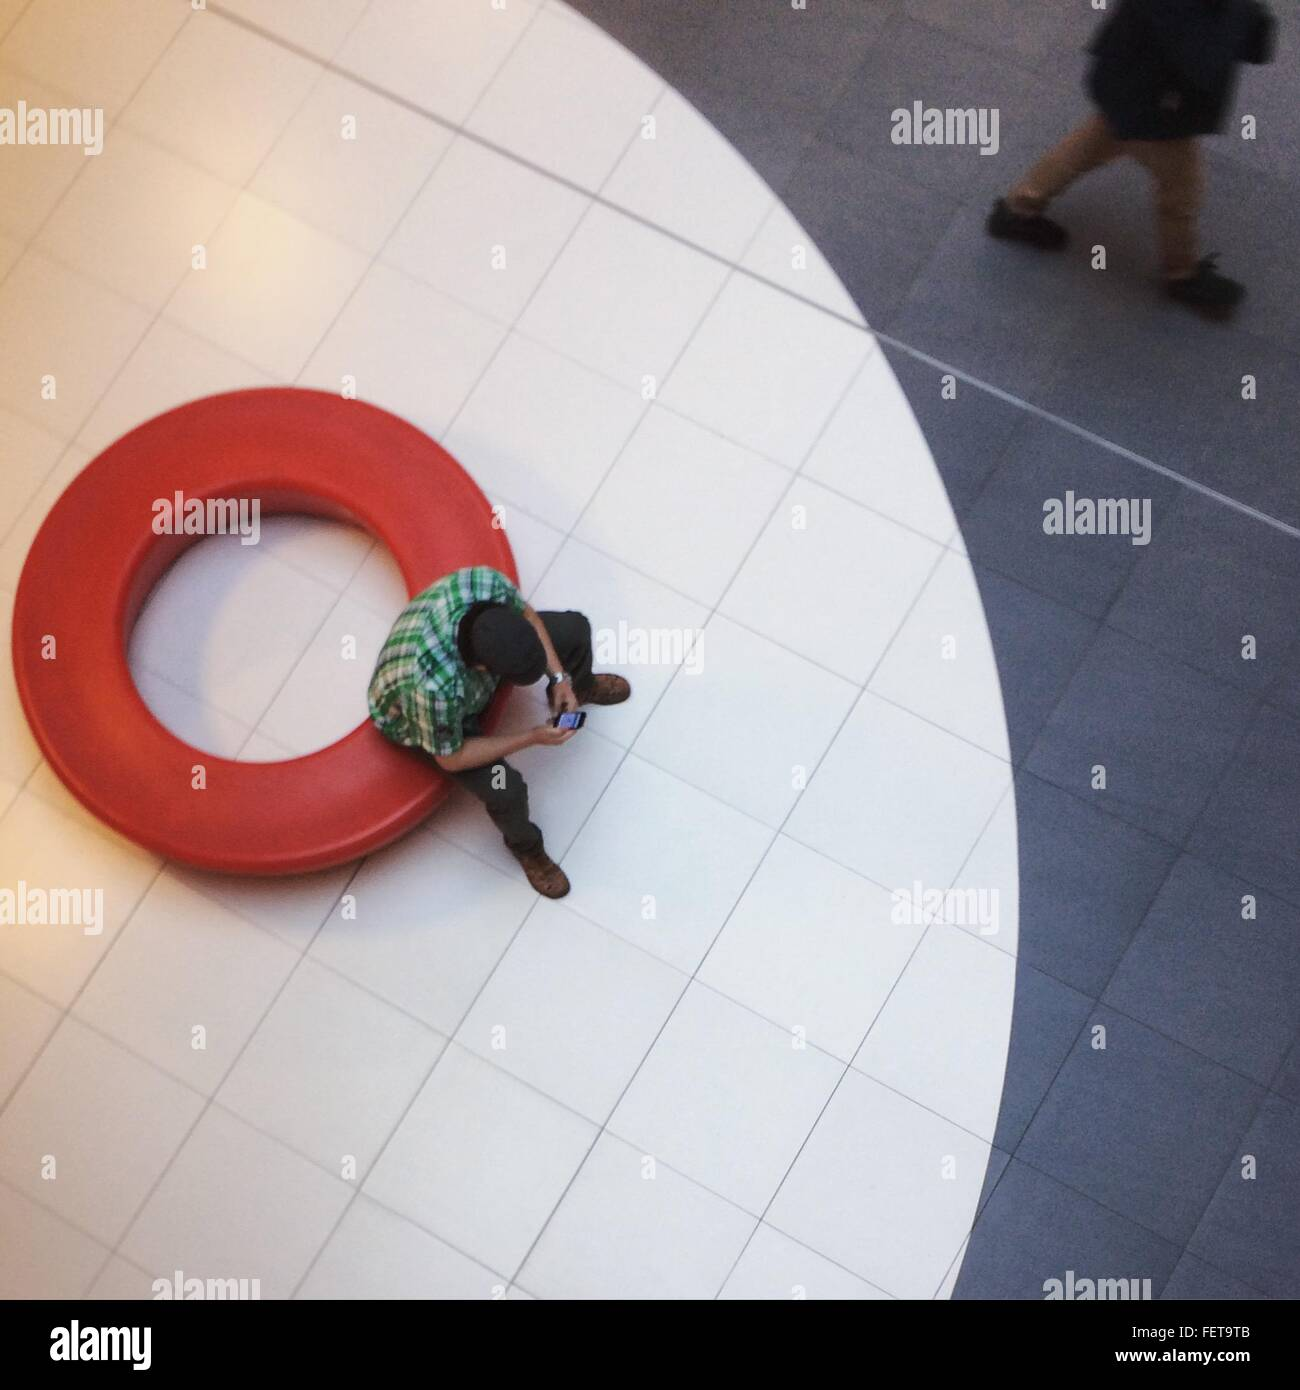 High Angle View Of Mann mit Handy In Lobby Stockbild